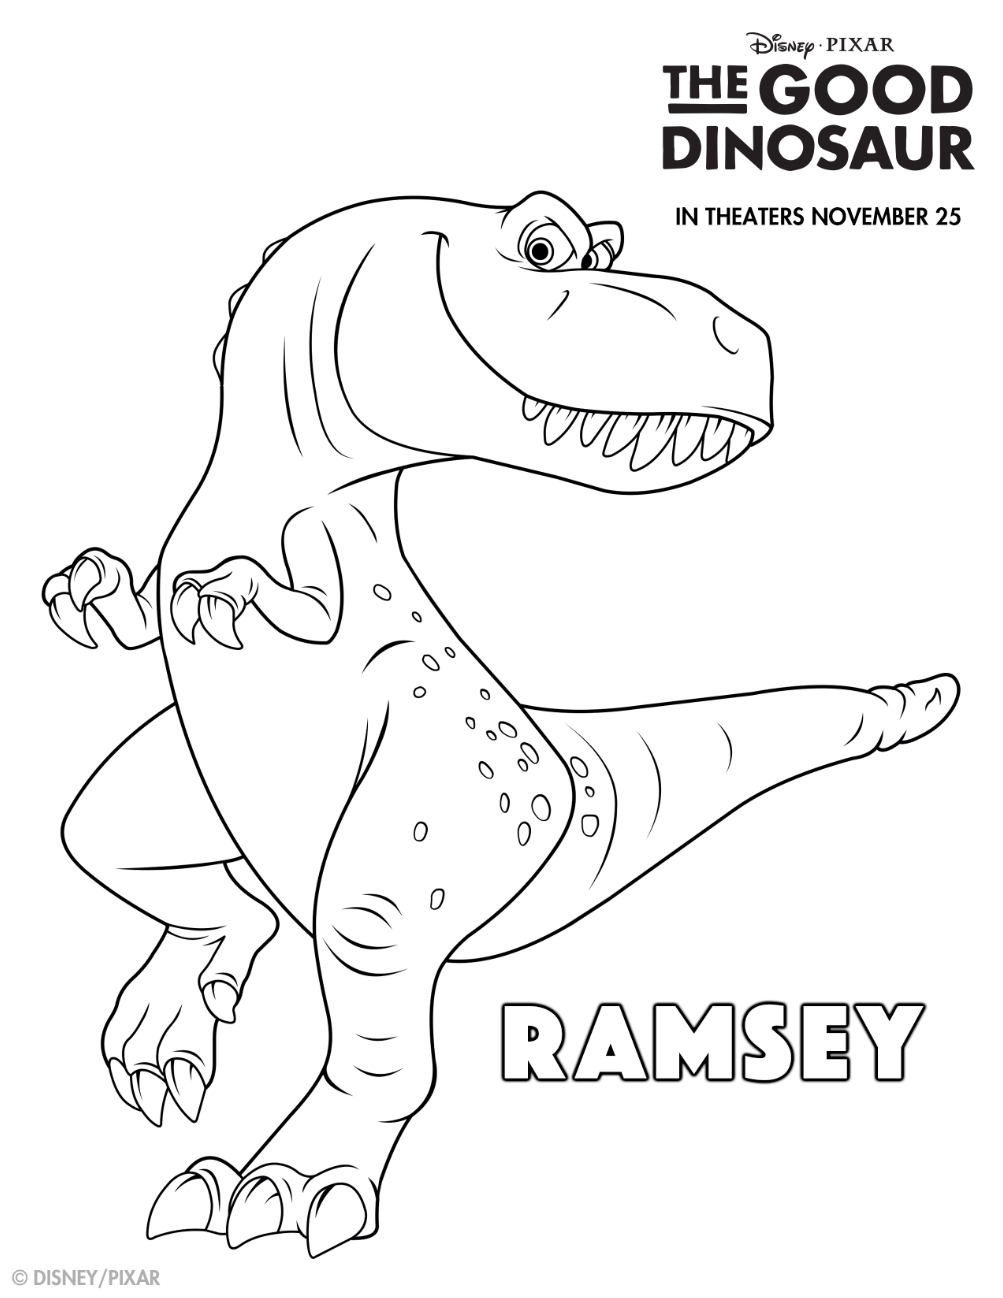 Kick Your Dino Crave Into High Gear With This Good Dino Coloring Sheet Meet Ramsey In Theatres Th The Good Dinosaur Dinosaur Coloring Dinosaur Coloring Pages